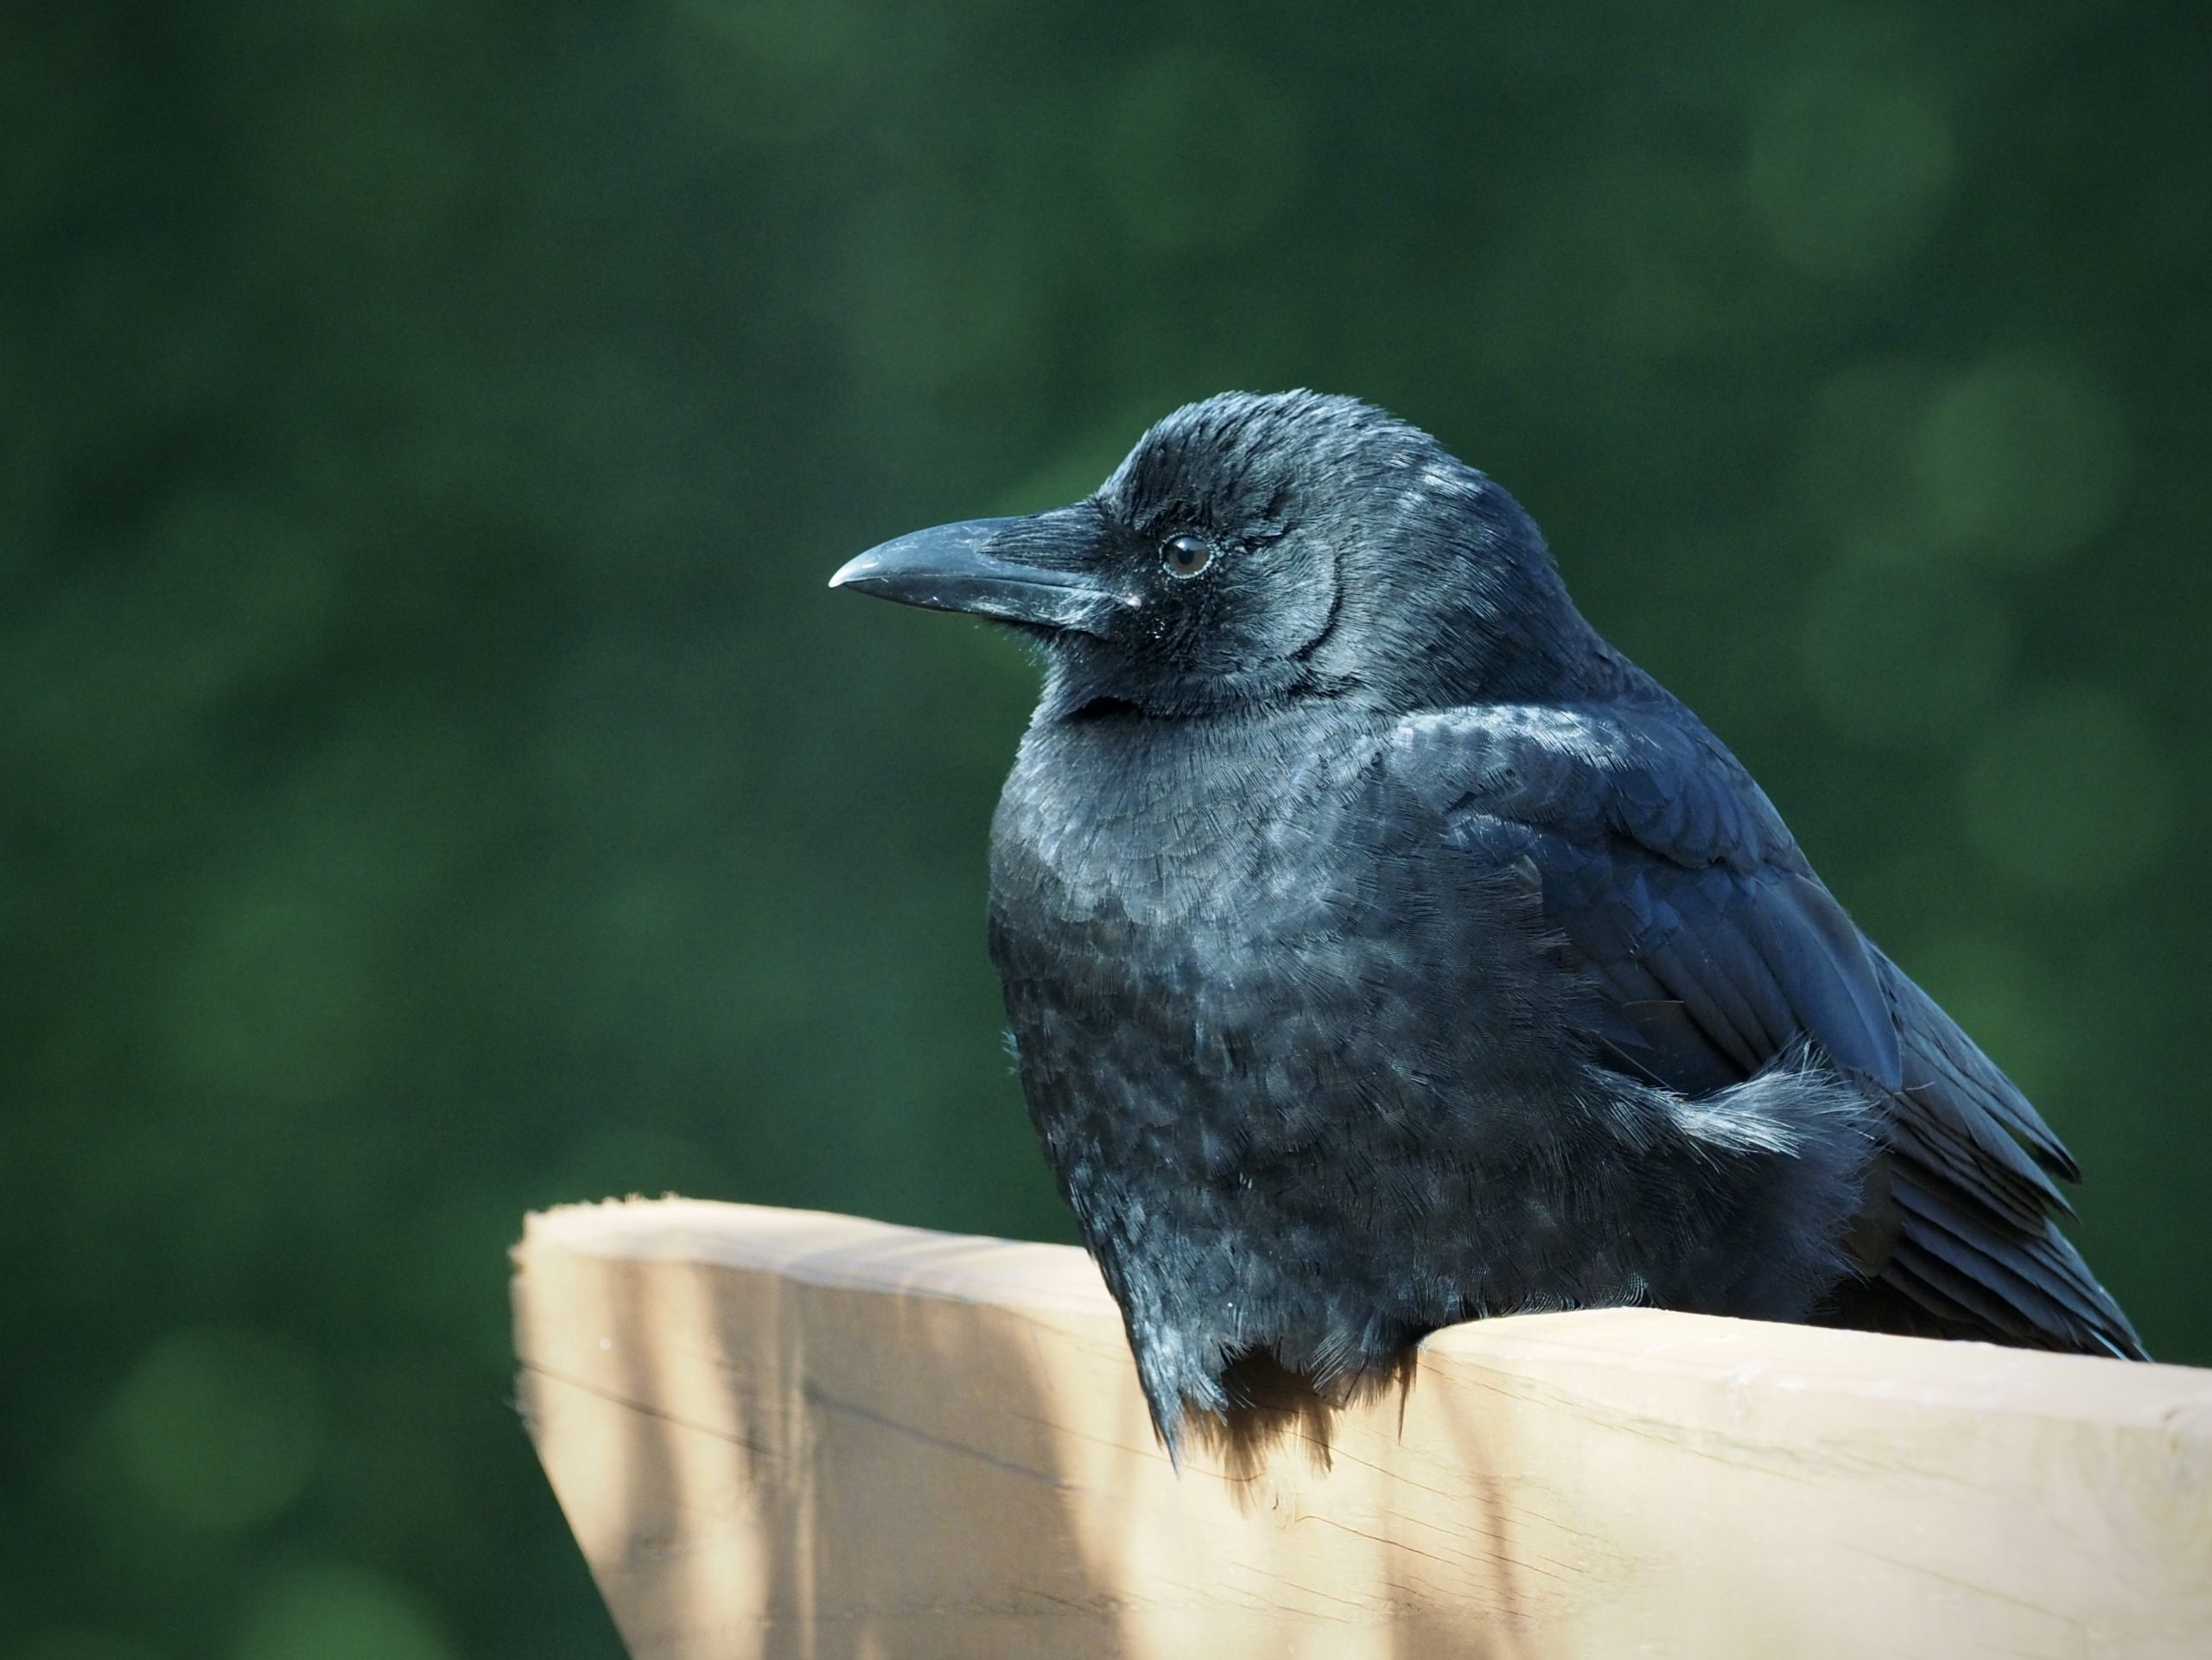 American Crow at Rest